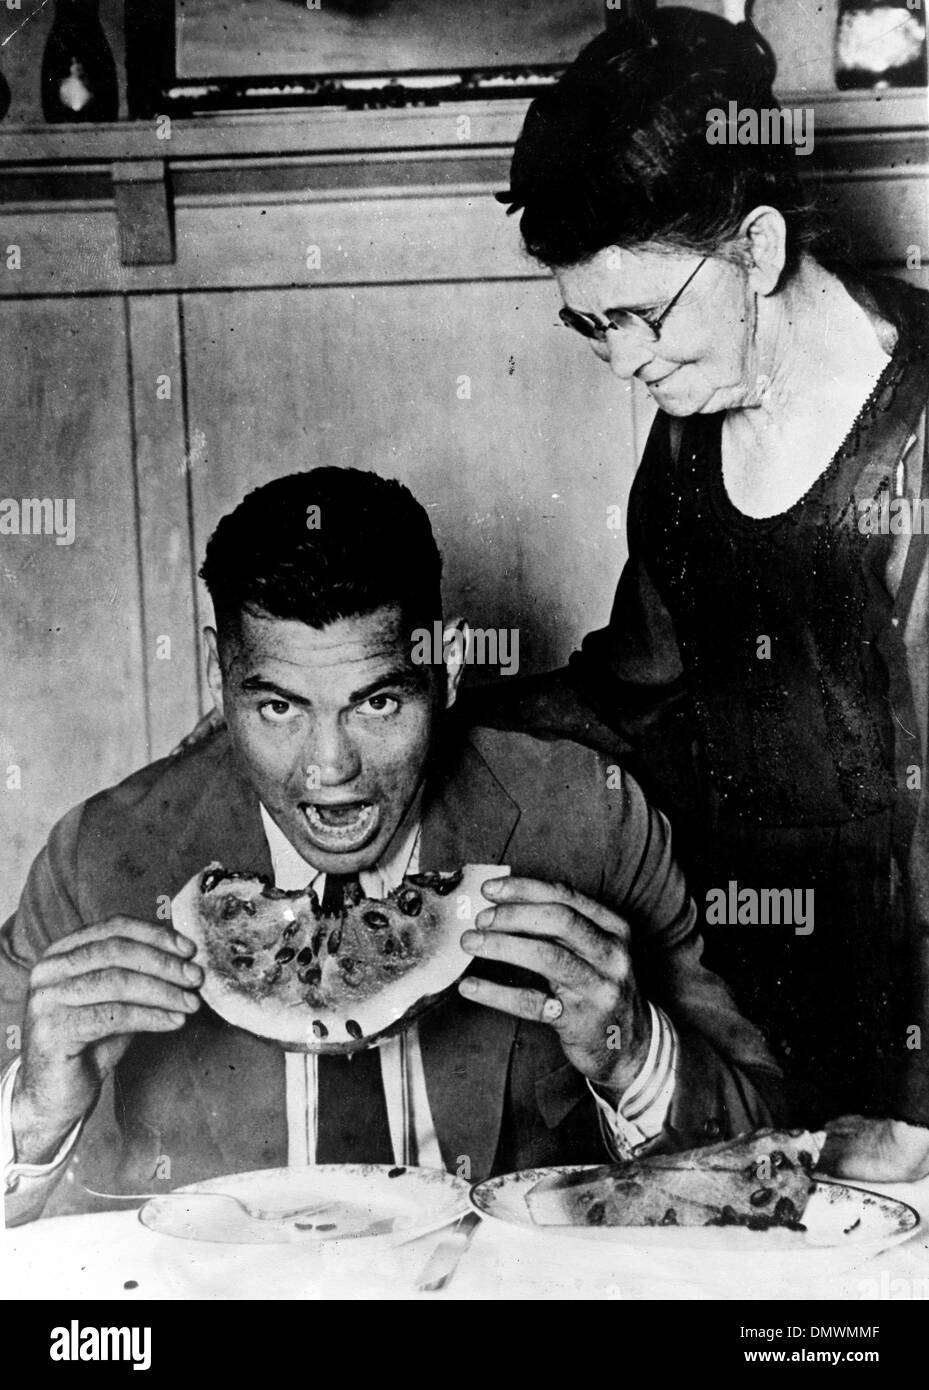 Aug. 5, 1945 - Manassa, CO, U.S. - JACK DEMPSEY with mother eating watermelon. Jack 'Manassa Mauler' Dempsey (June 24, 1895 - May 31, 1983) was an American boxer who held the world heavyweight title from 1919 to 1926. Dempsey's aggressive style and punching power made him one of the most popular boxers in history. Many of his fights set financial and attendance records. (Credit Ima - Stock Image